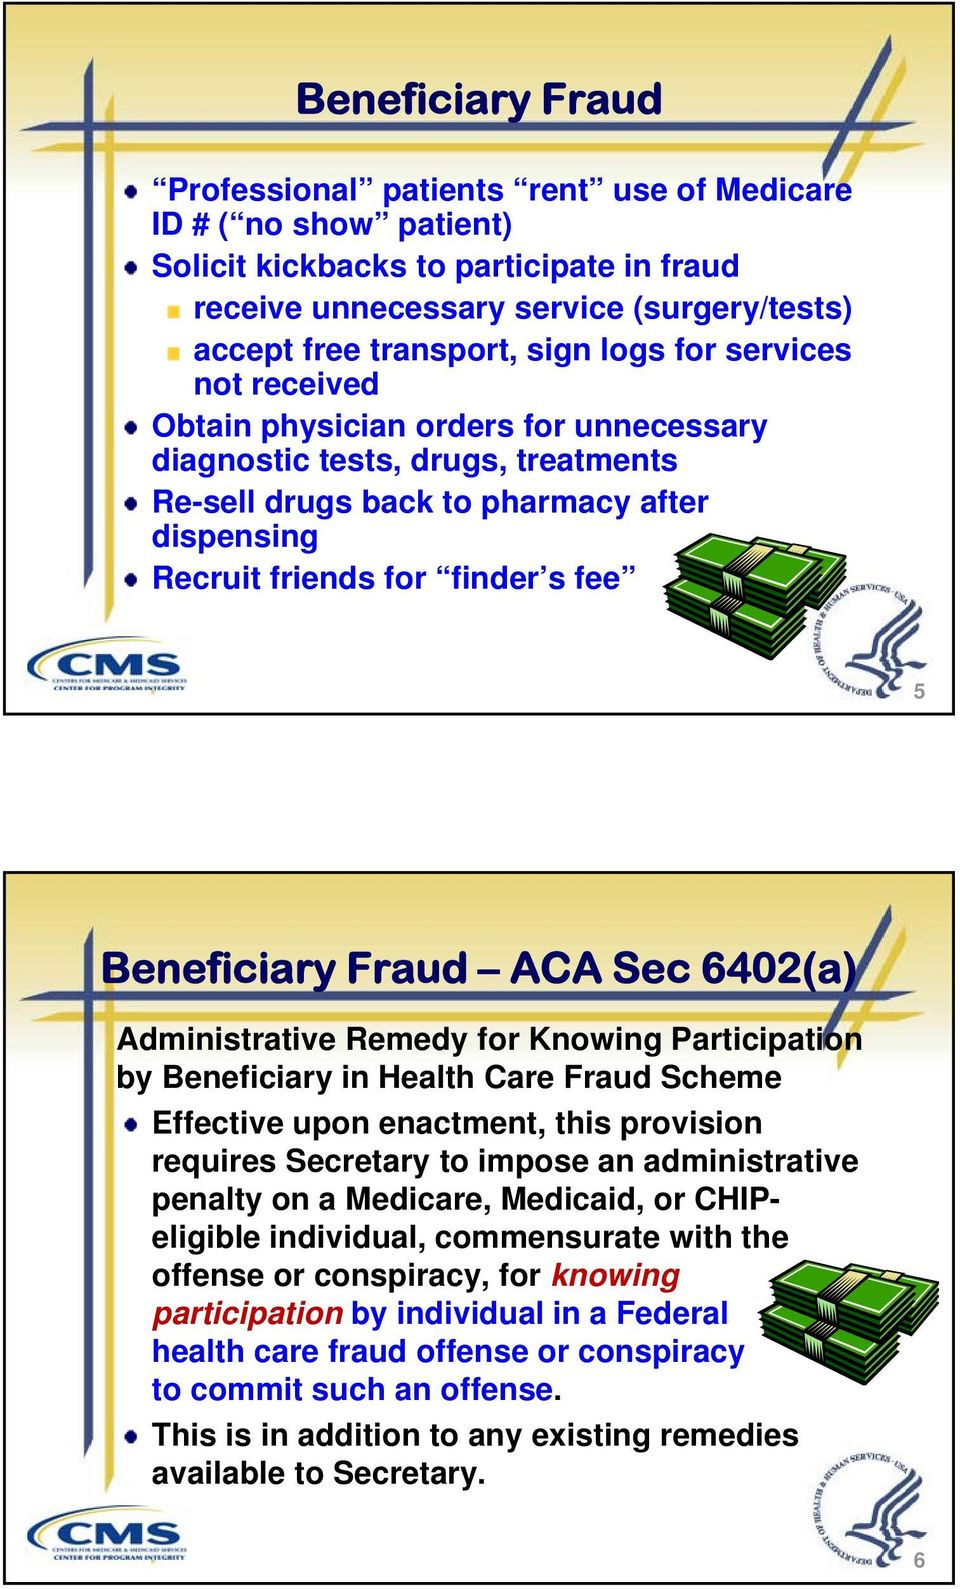 Beneficiary Fraud ACA Sec 6402(a) Administrative Remedy for Knowing Participation by Beneficiary in Health Care Fraud Scheme Effective upon enactment, this provision requires Secretary to impose an